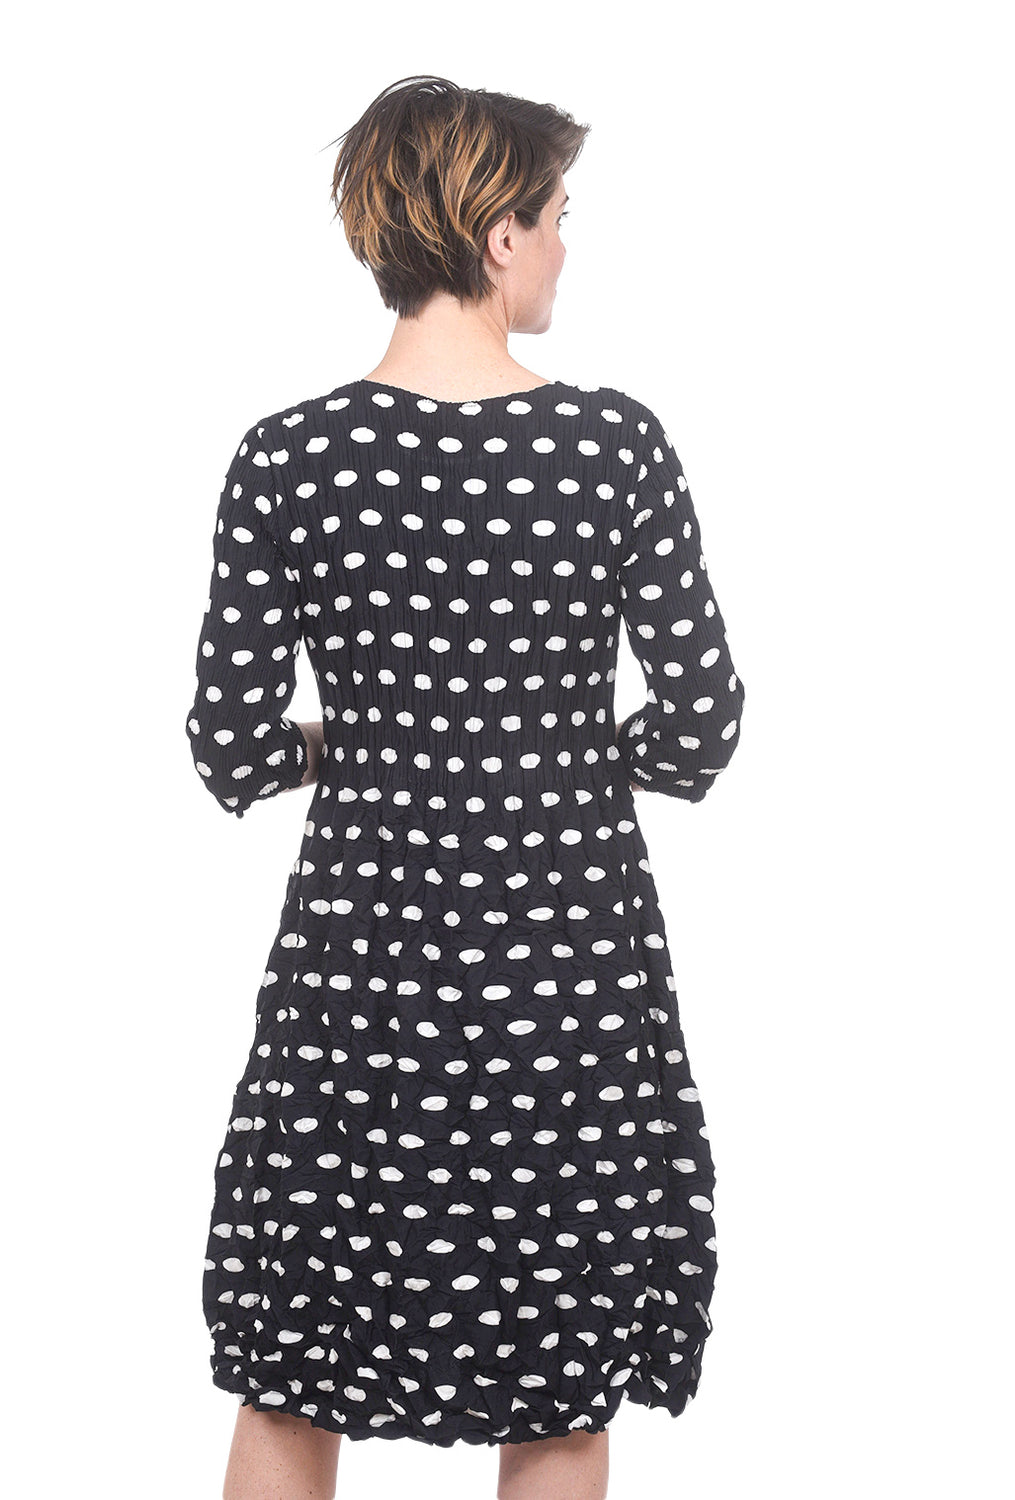 Alquema 3/4-Sleeve Smash Pocket Dress, Black Dot